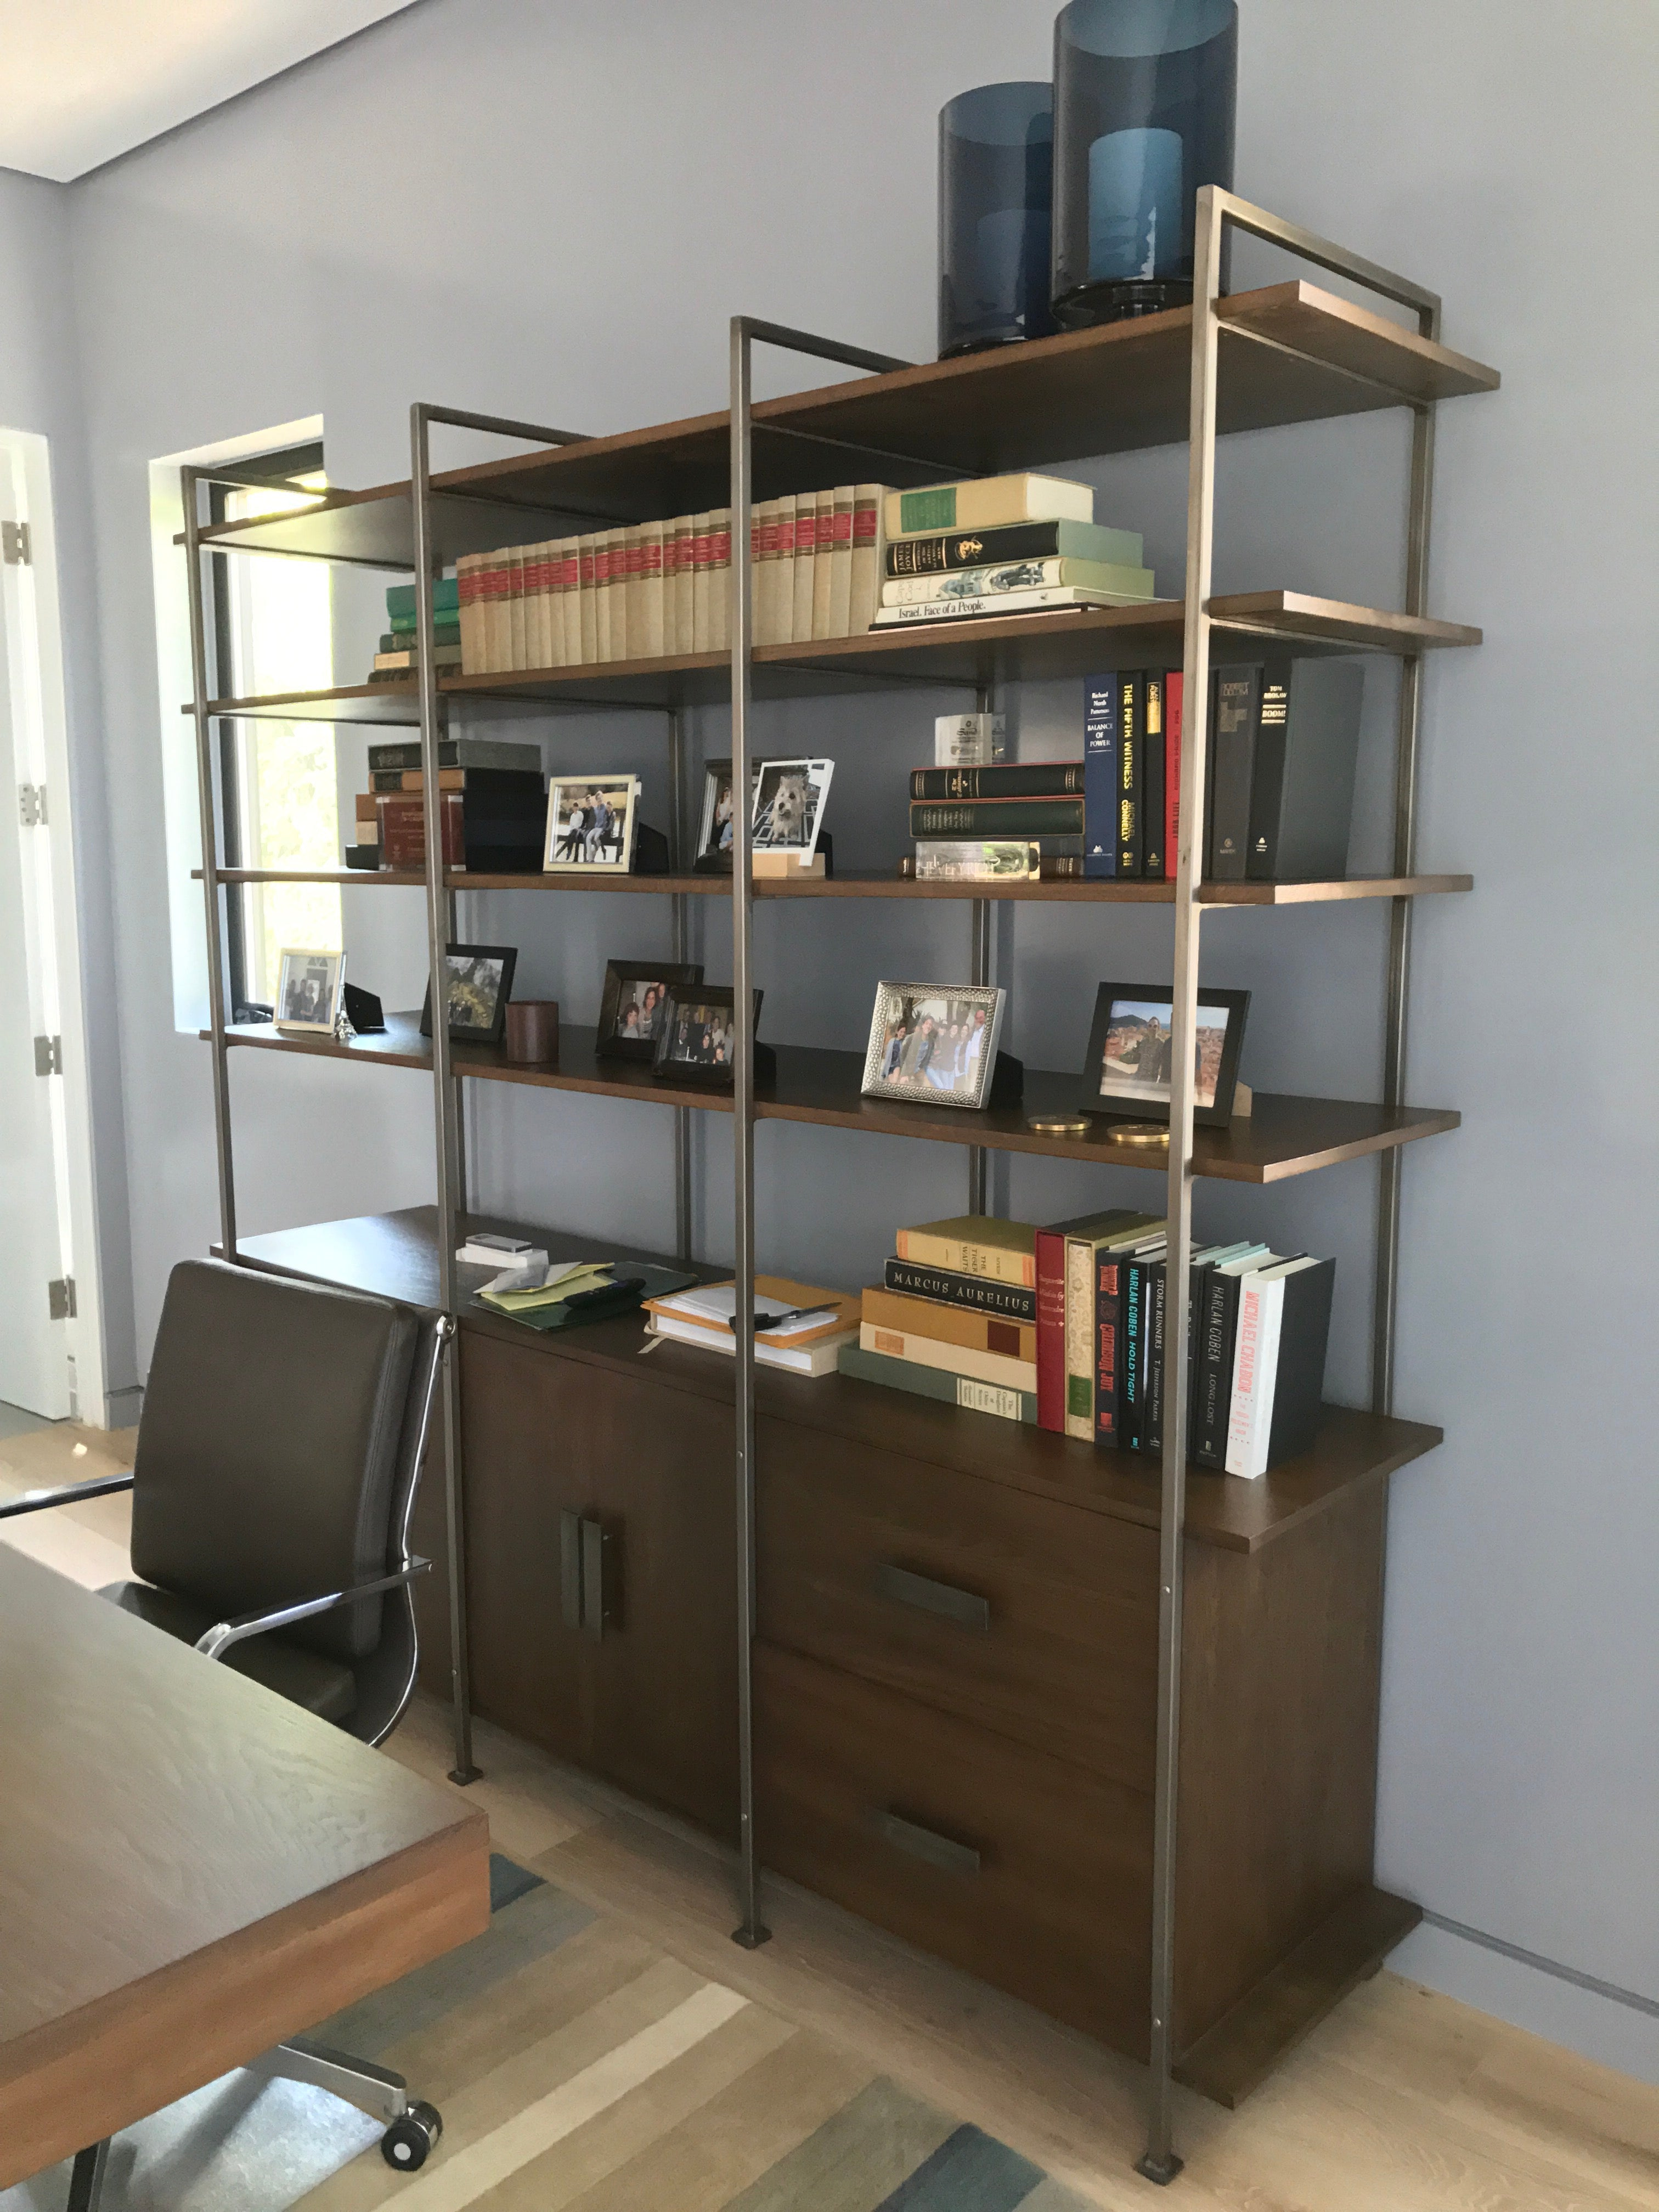 etagere media shelf bookcases wood brown metal walmart five frame ailis leaning bookcase com ip tower pine